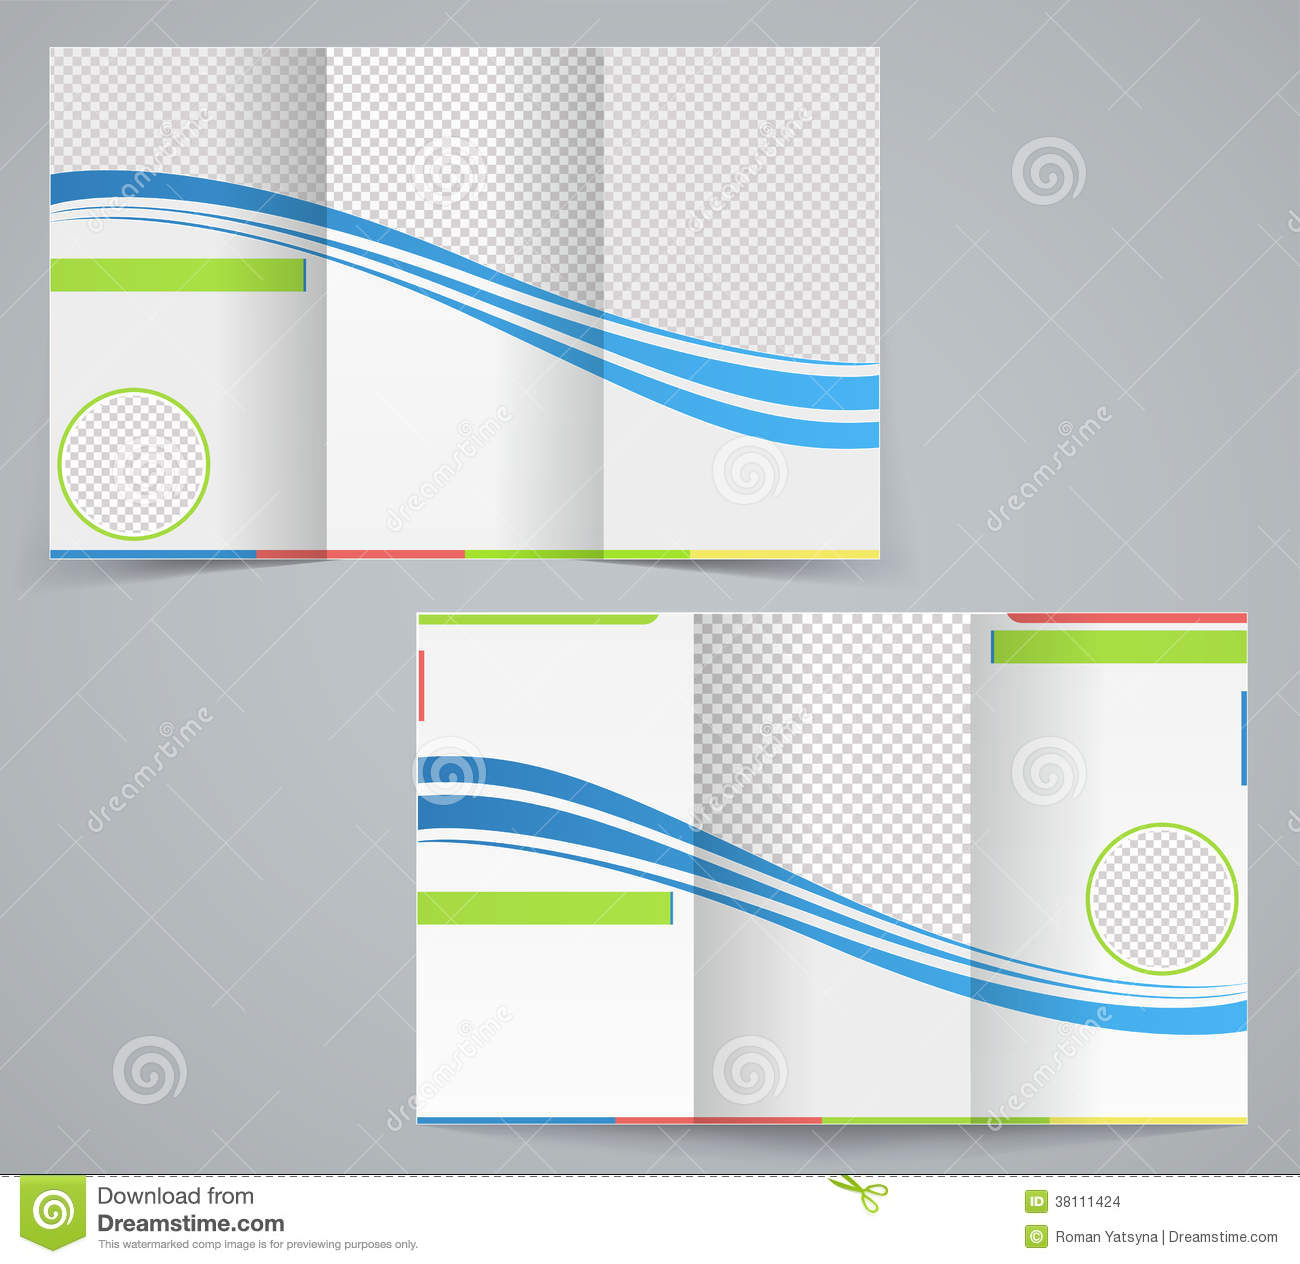 Trifold Business Brochure Template Images Image 38111424 – Free Blank Tri Fold Brochure Templates